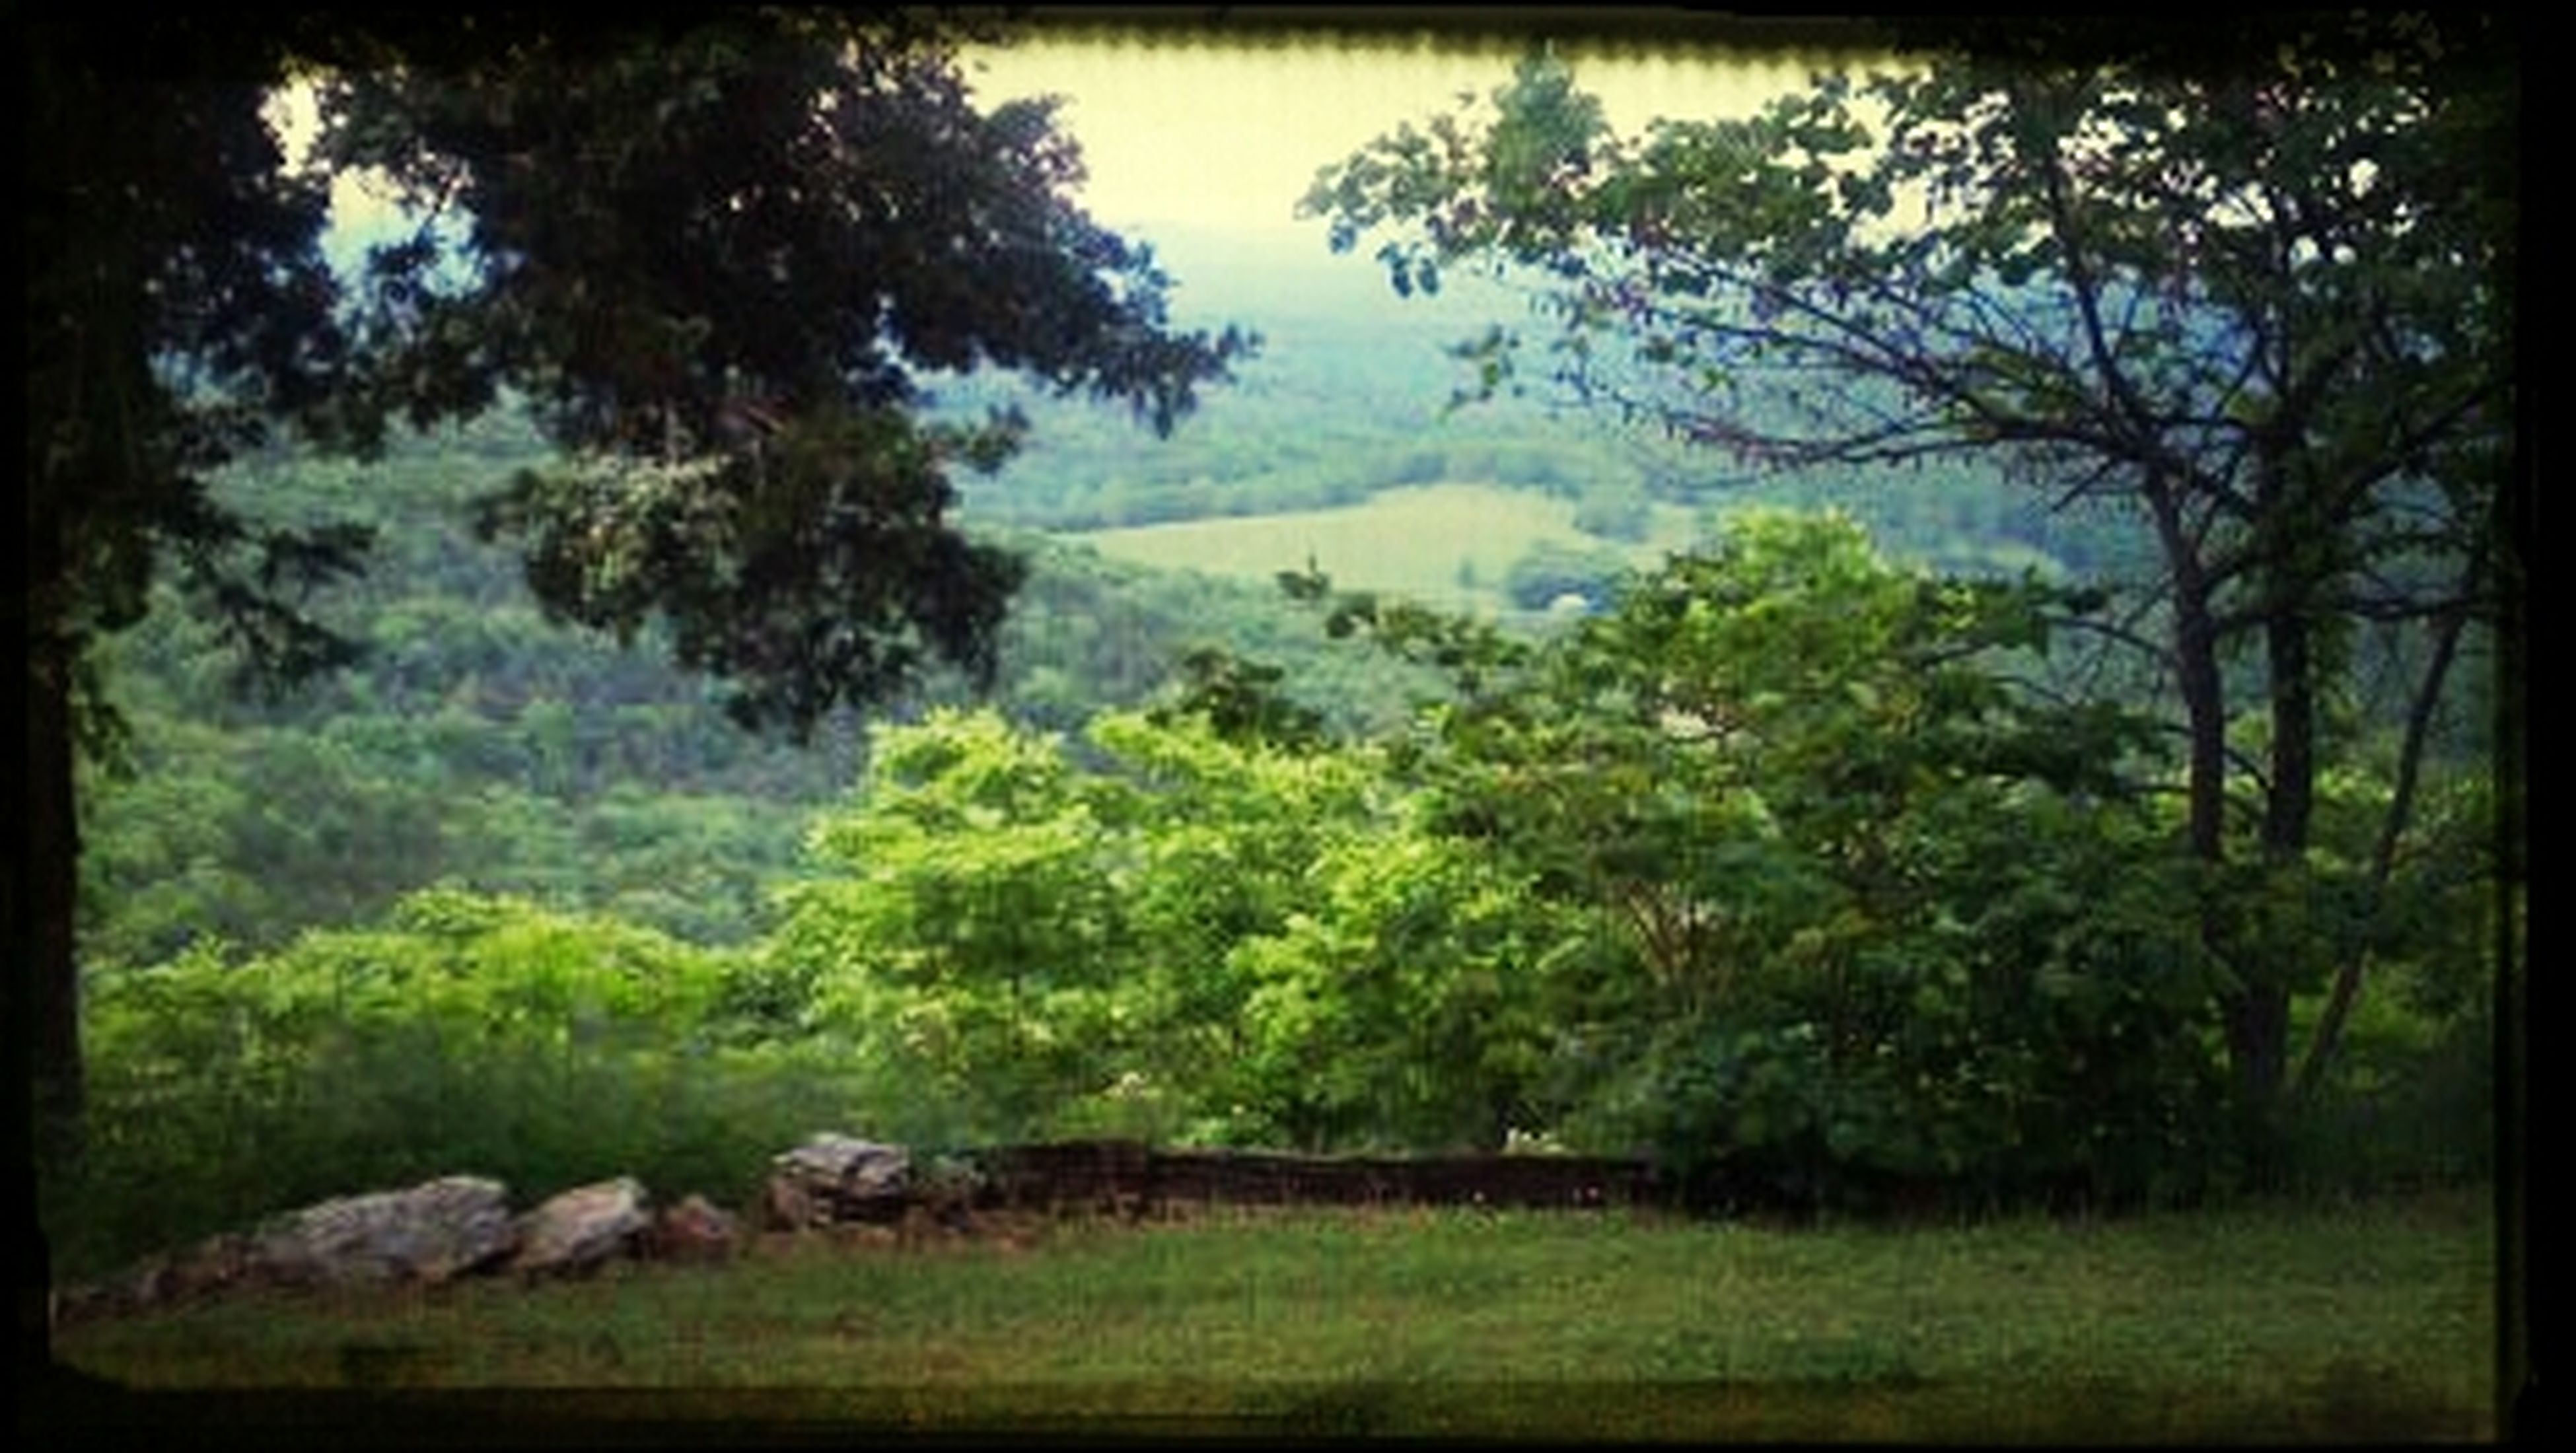 Beautiful view from the cabin we rented at the Eagles Lodge in Eureka Springs AR.